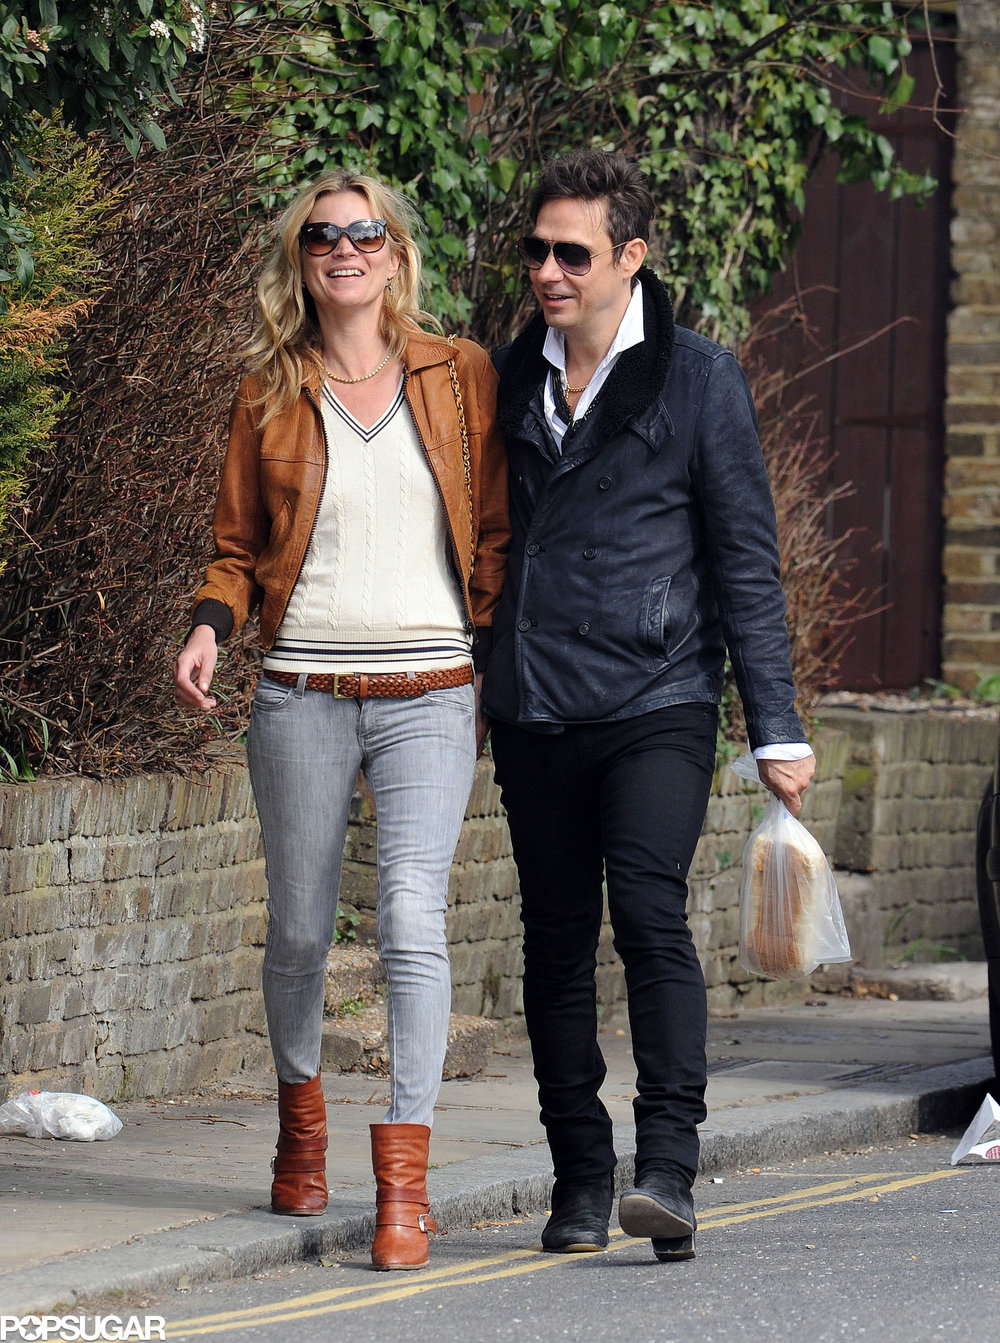 Kate-Moss-Jamie-Hince-shared-laugh-while-walking-through.jpg